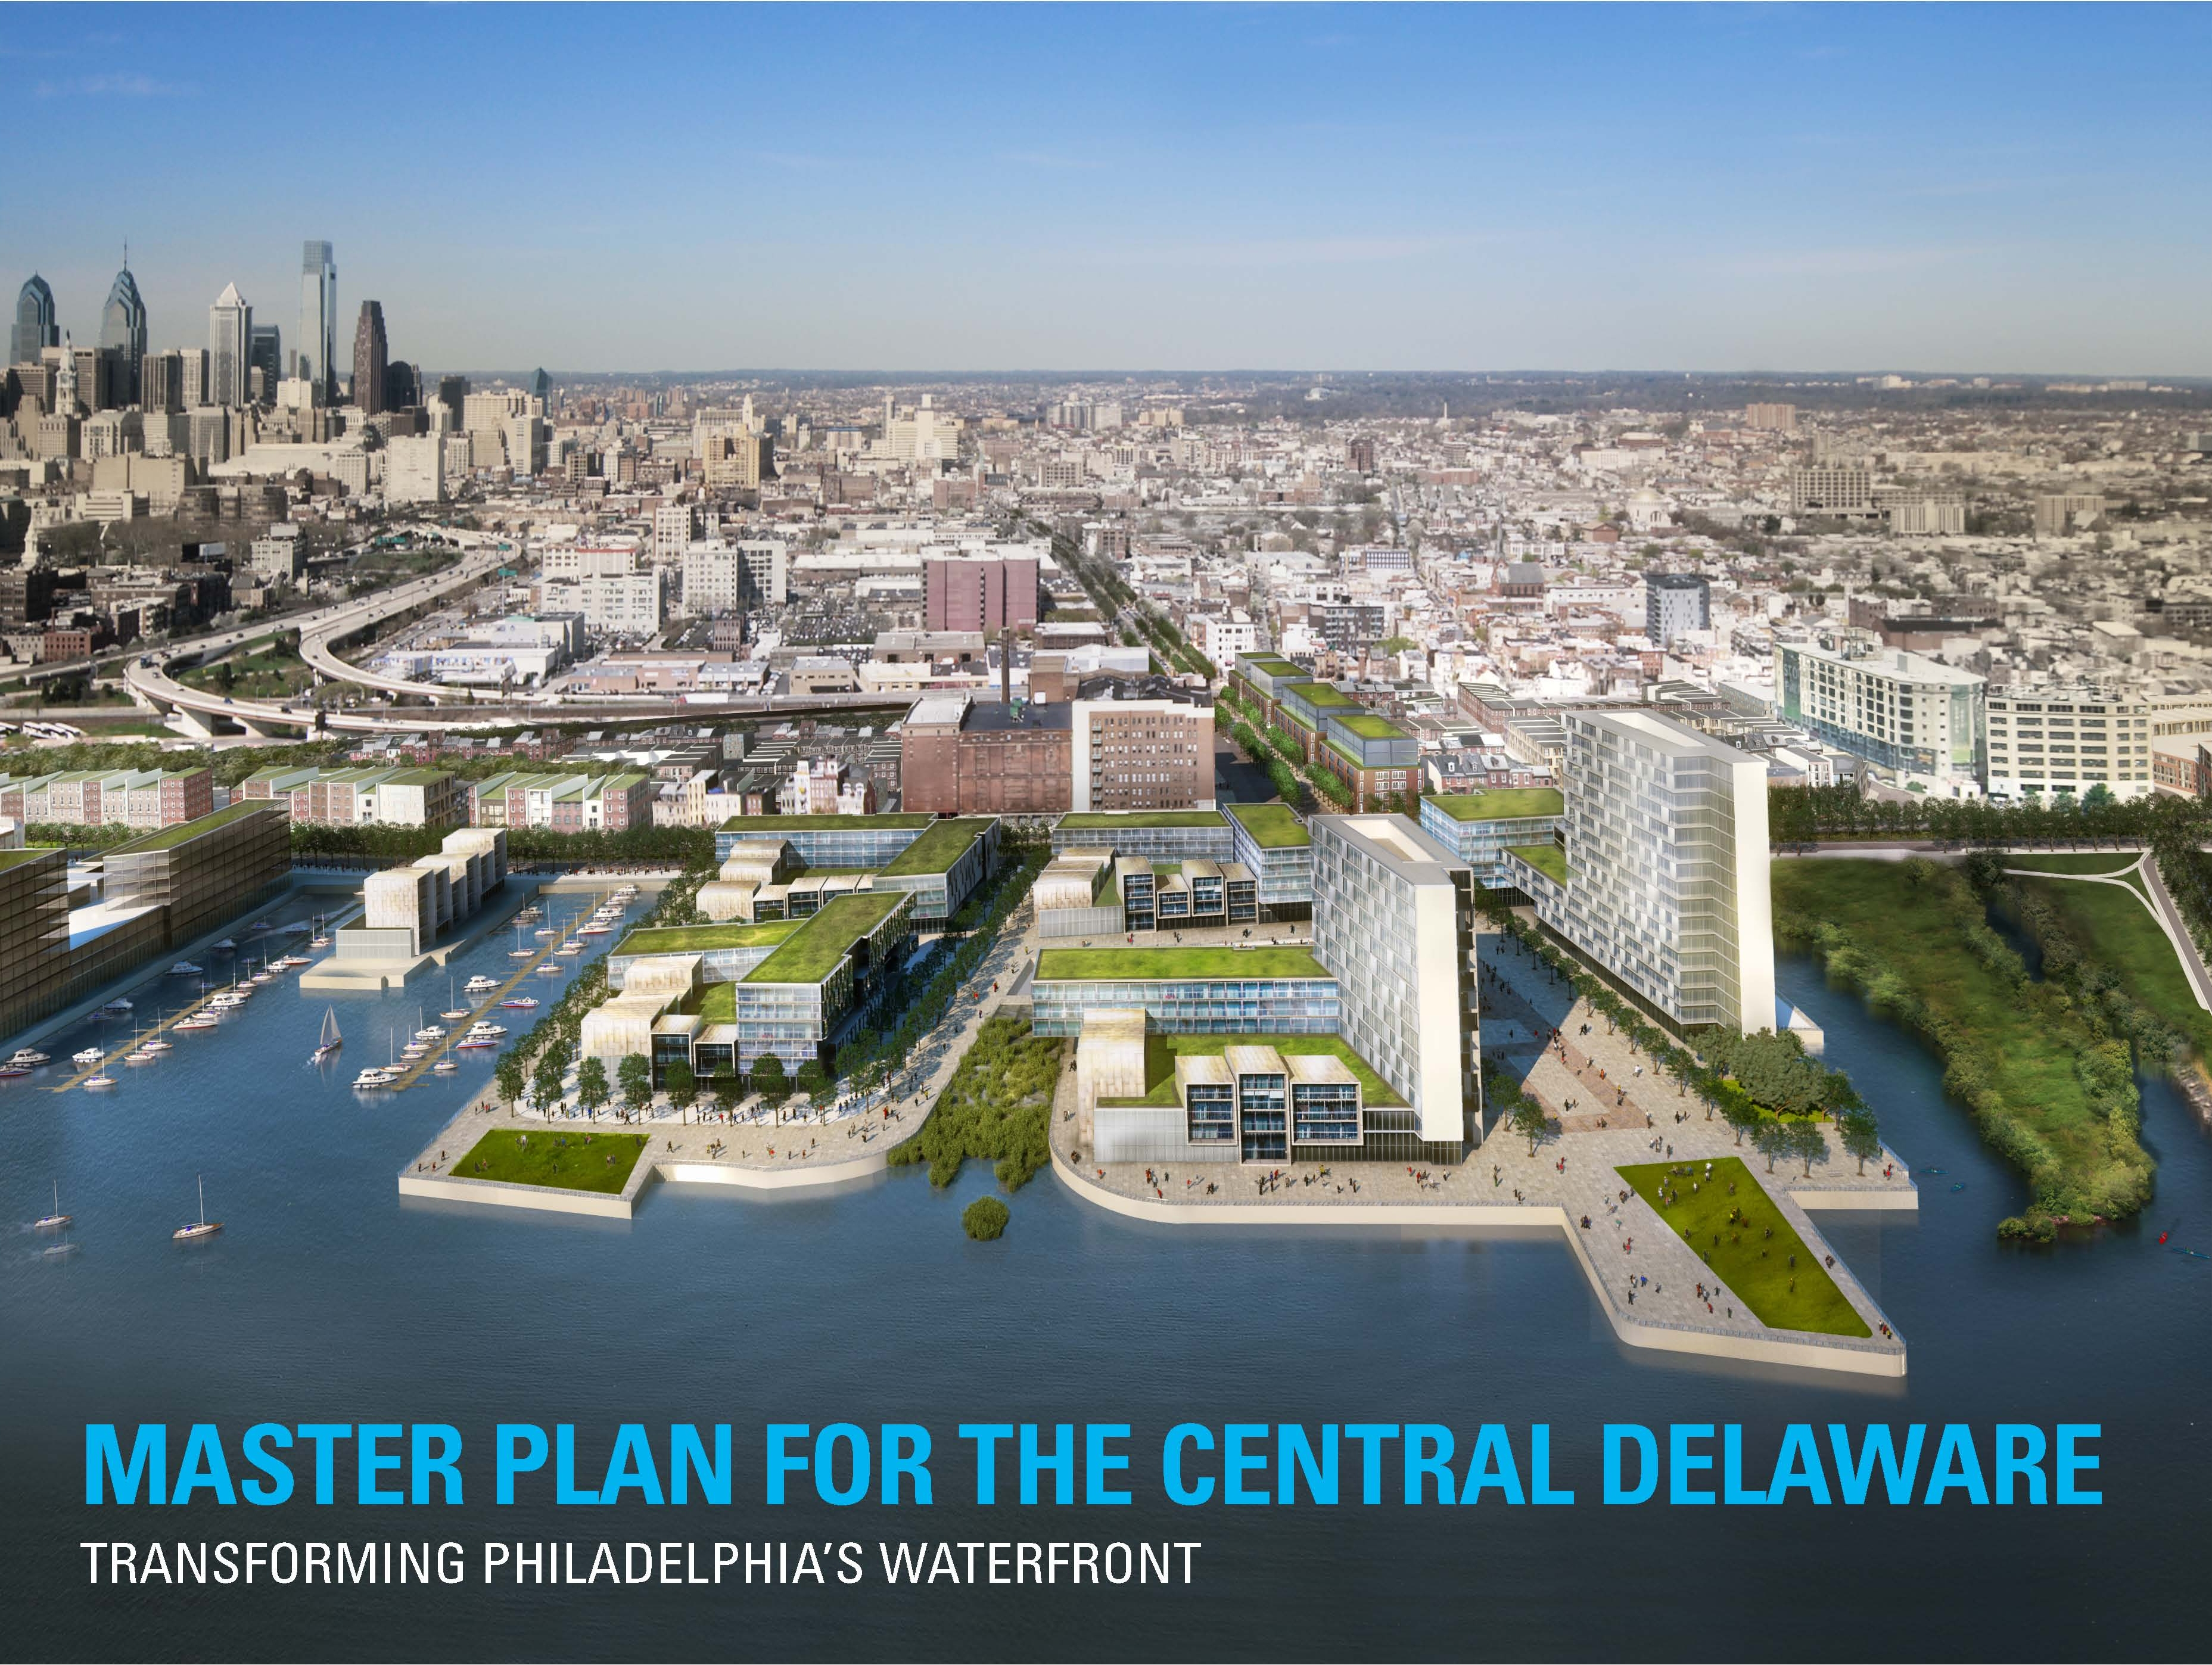 http-planphilly-com-eyesonthestreet-wp-content-uploads-2012-02-masterplan-cover-jpg